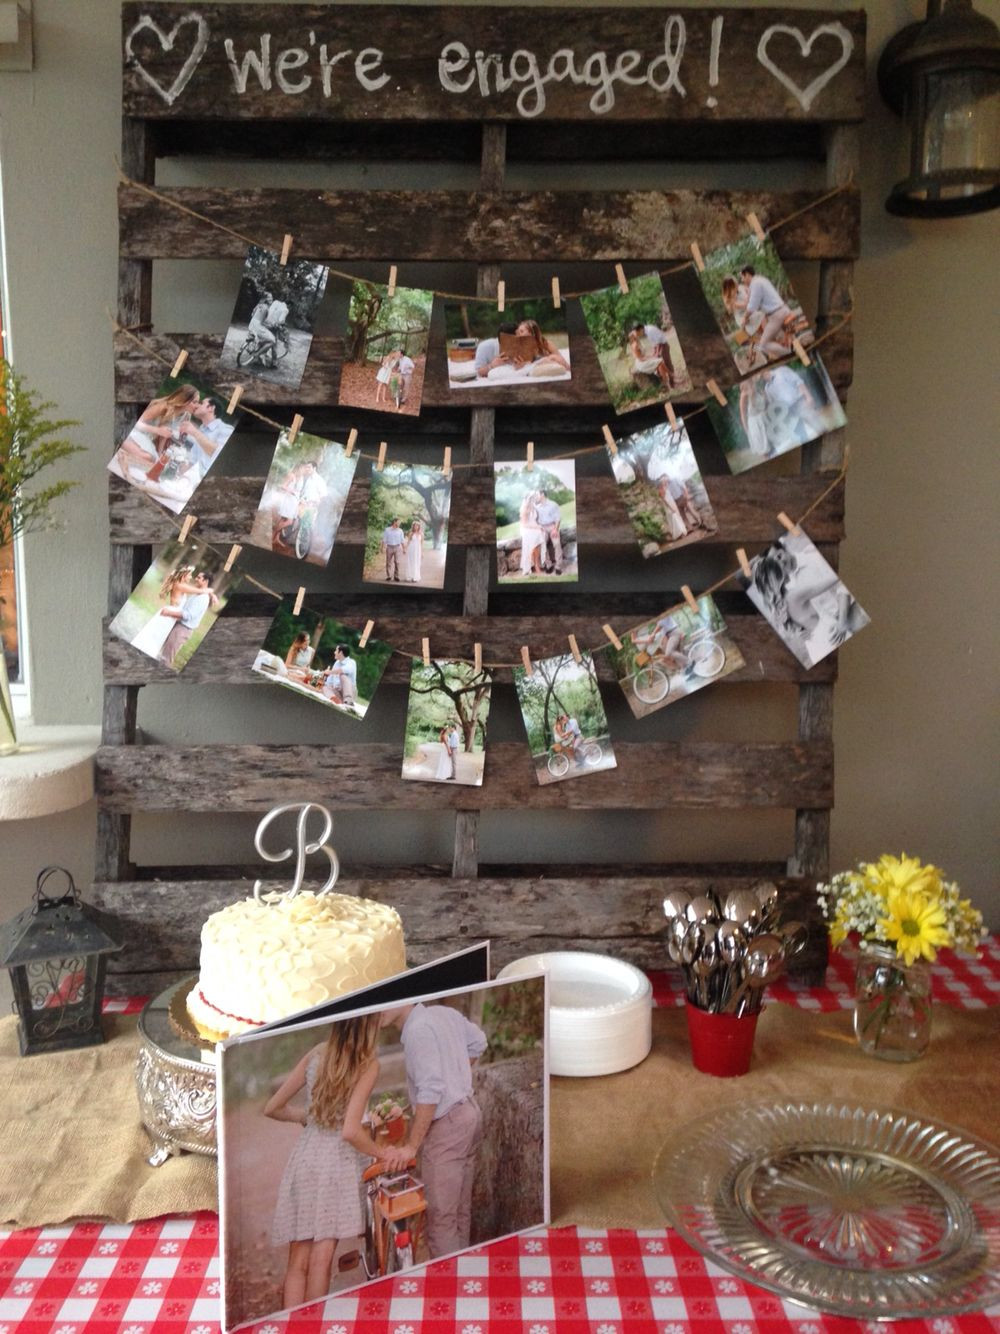 Engagement Party Theme Ideas  I do BBQ … Engagement